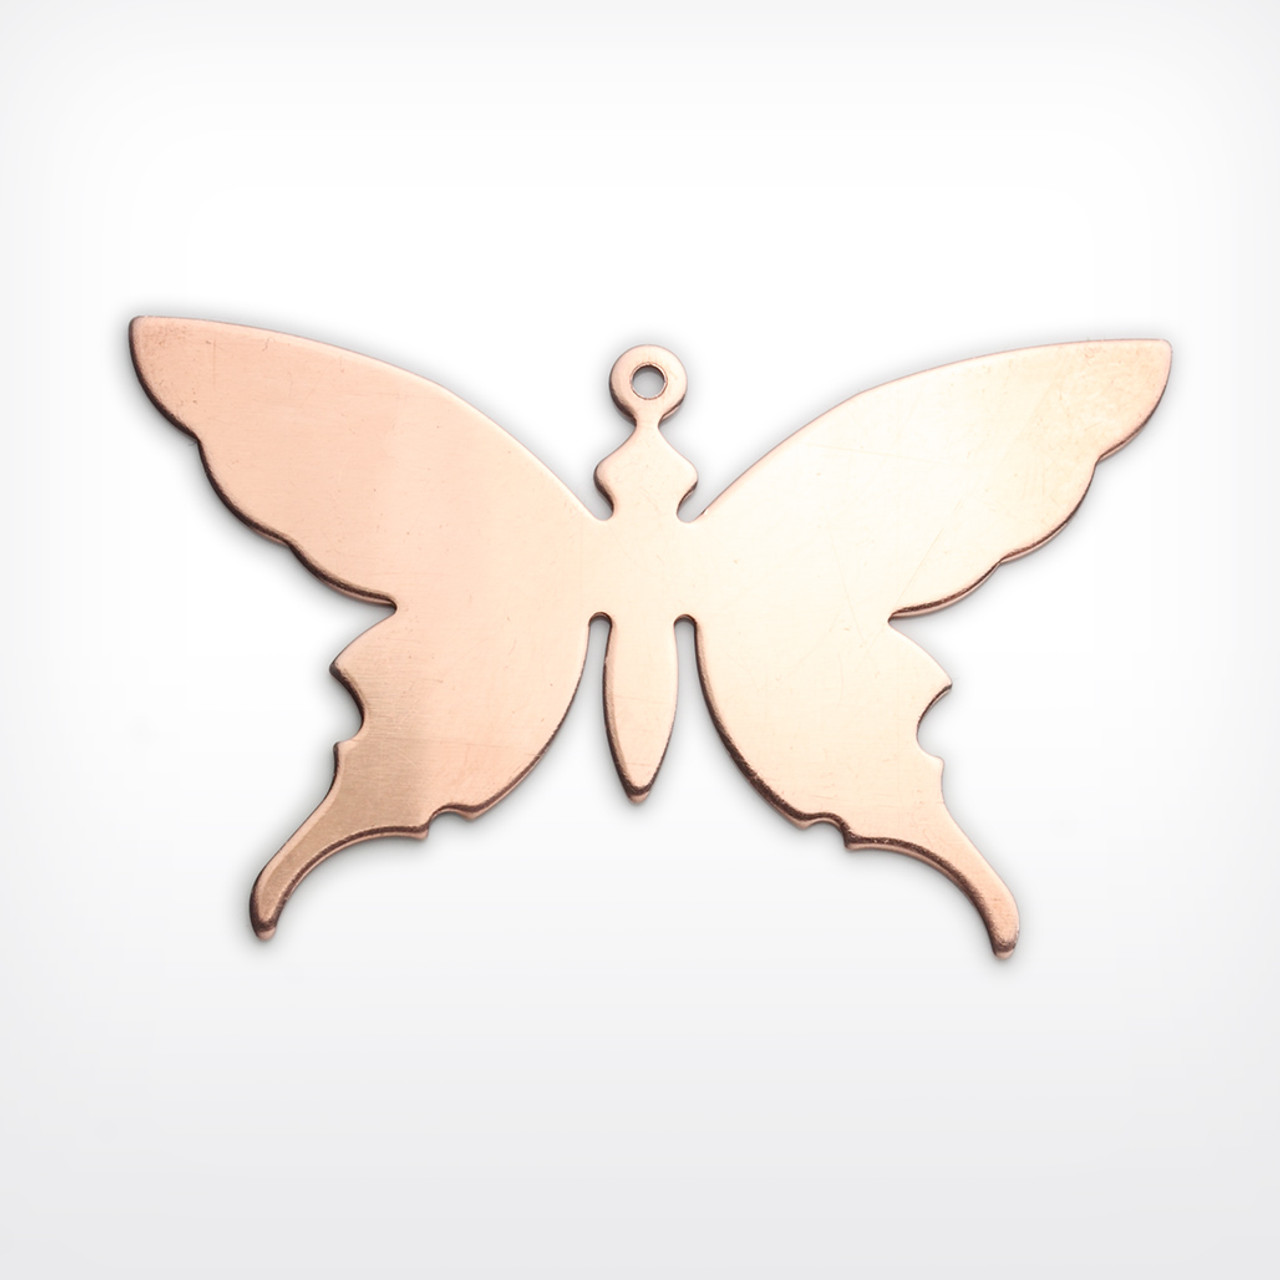 Copper Blank Butterfly Stamped Shape for Enamelling & Other Crafts